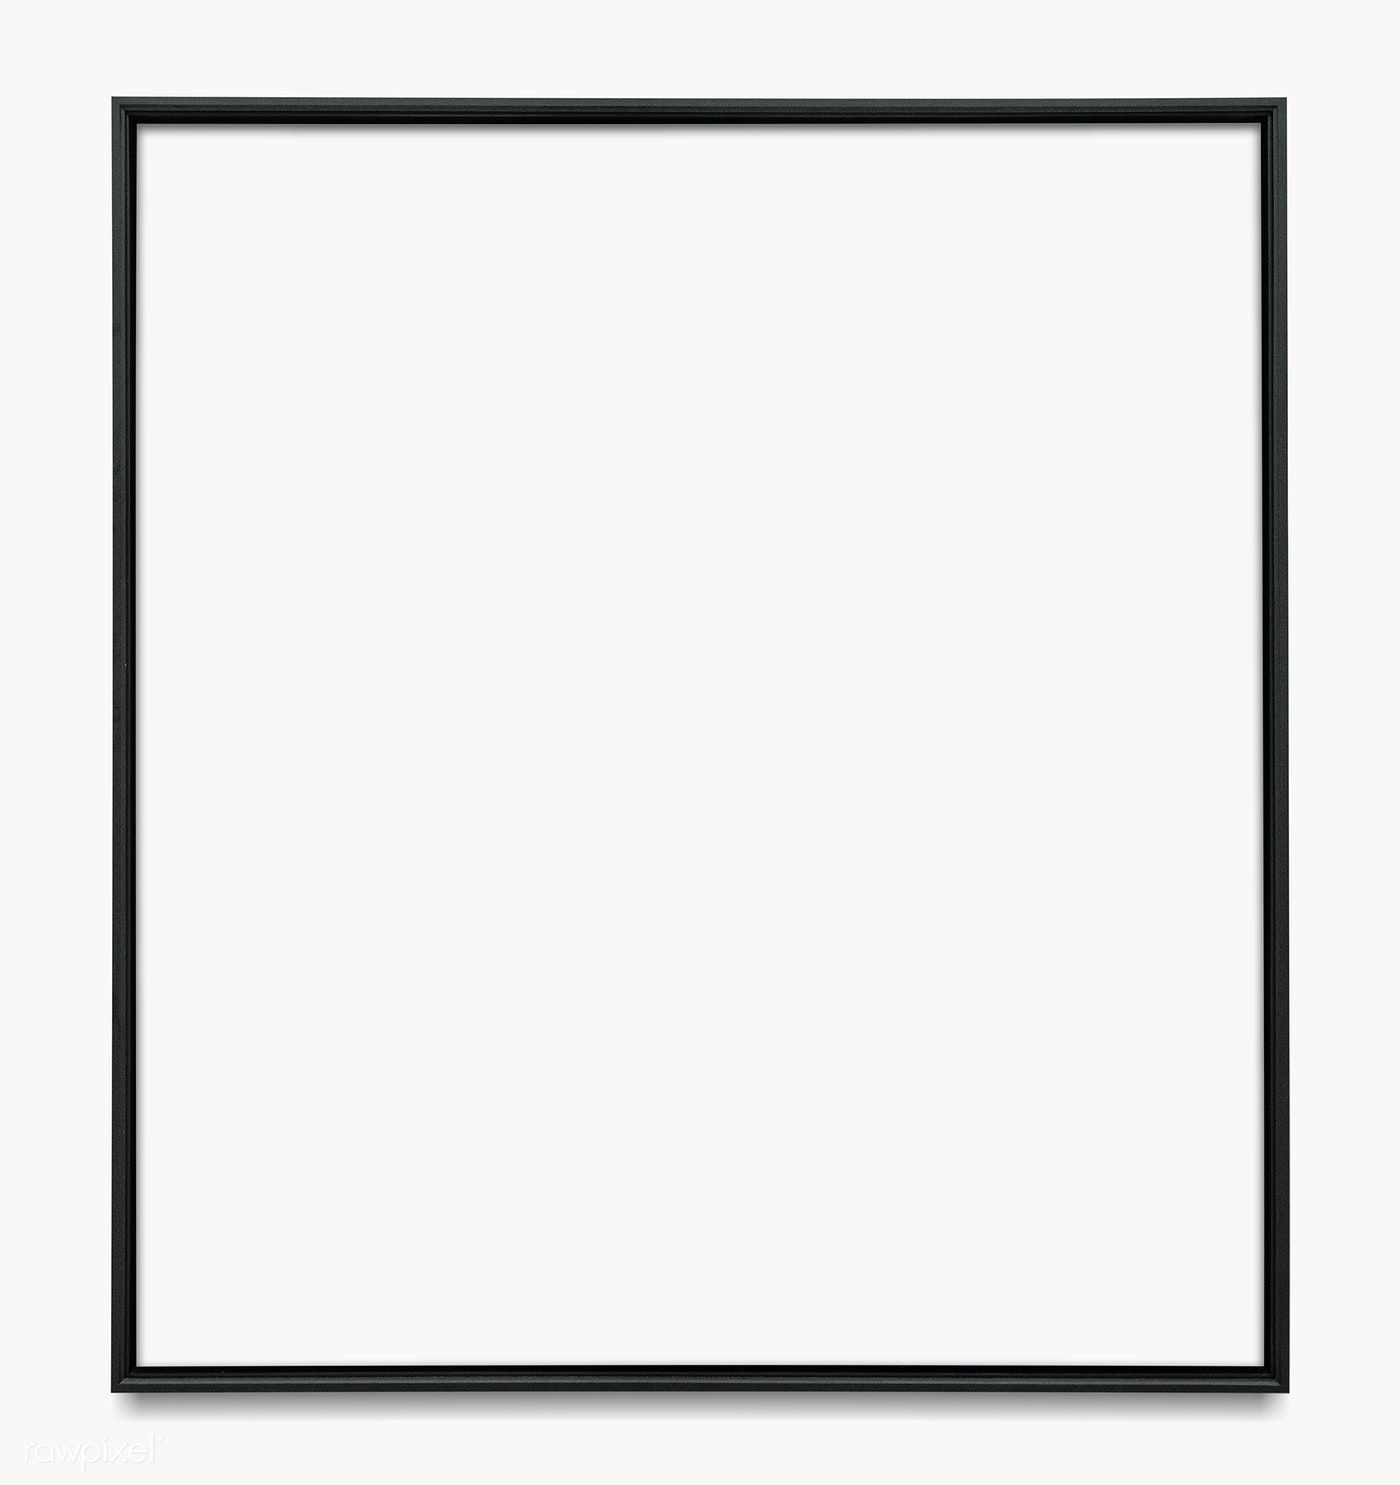 Download Premium Png Of Black Picture Frame Transparent Png 1230673 Black Picture Frames Picture Frames Green Screen Background Images